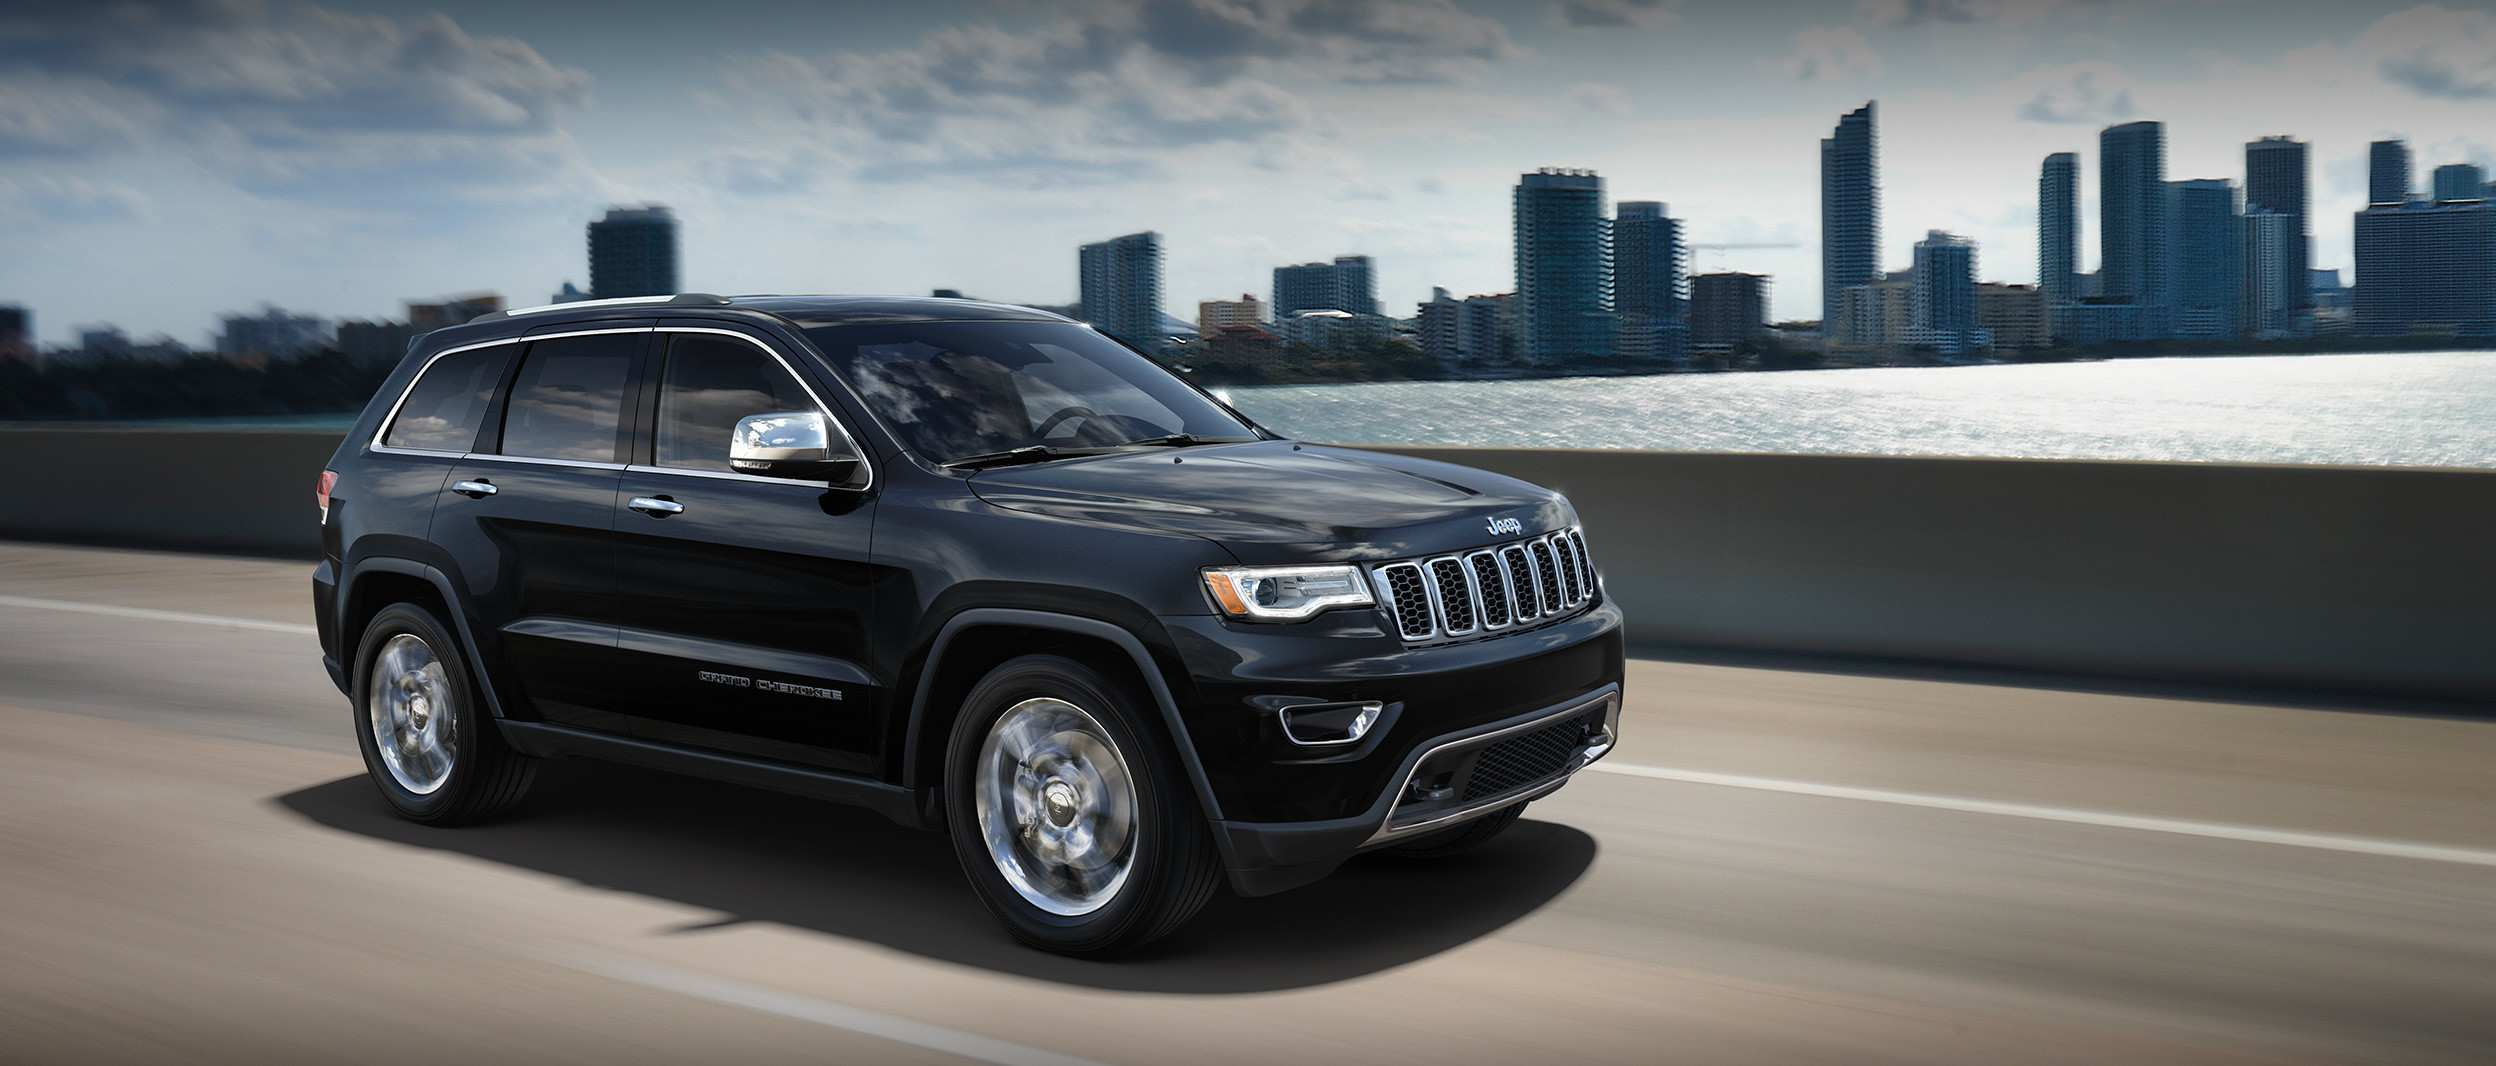 24 All New 2019 Jeep Grand Cherokee Diesel Model